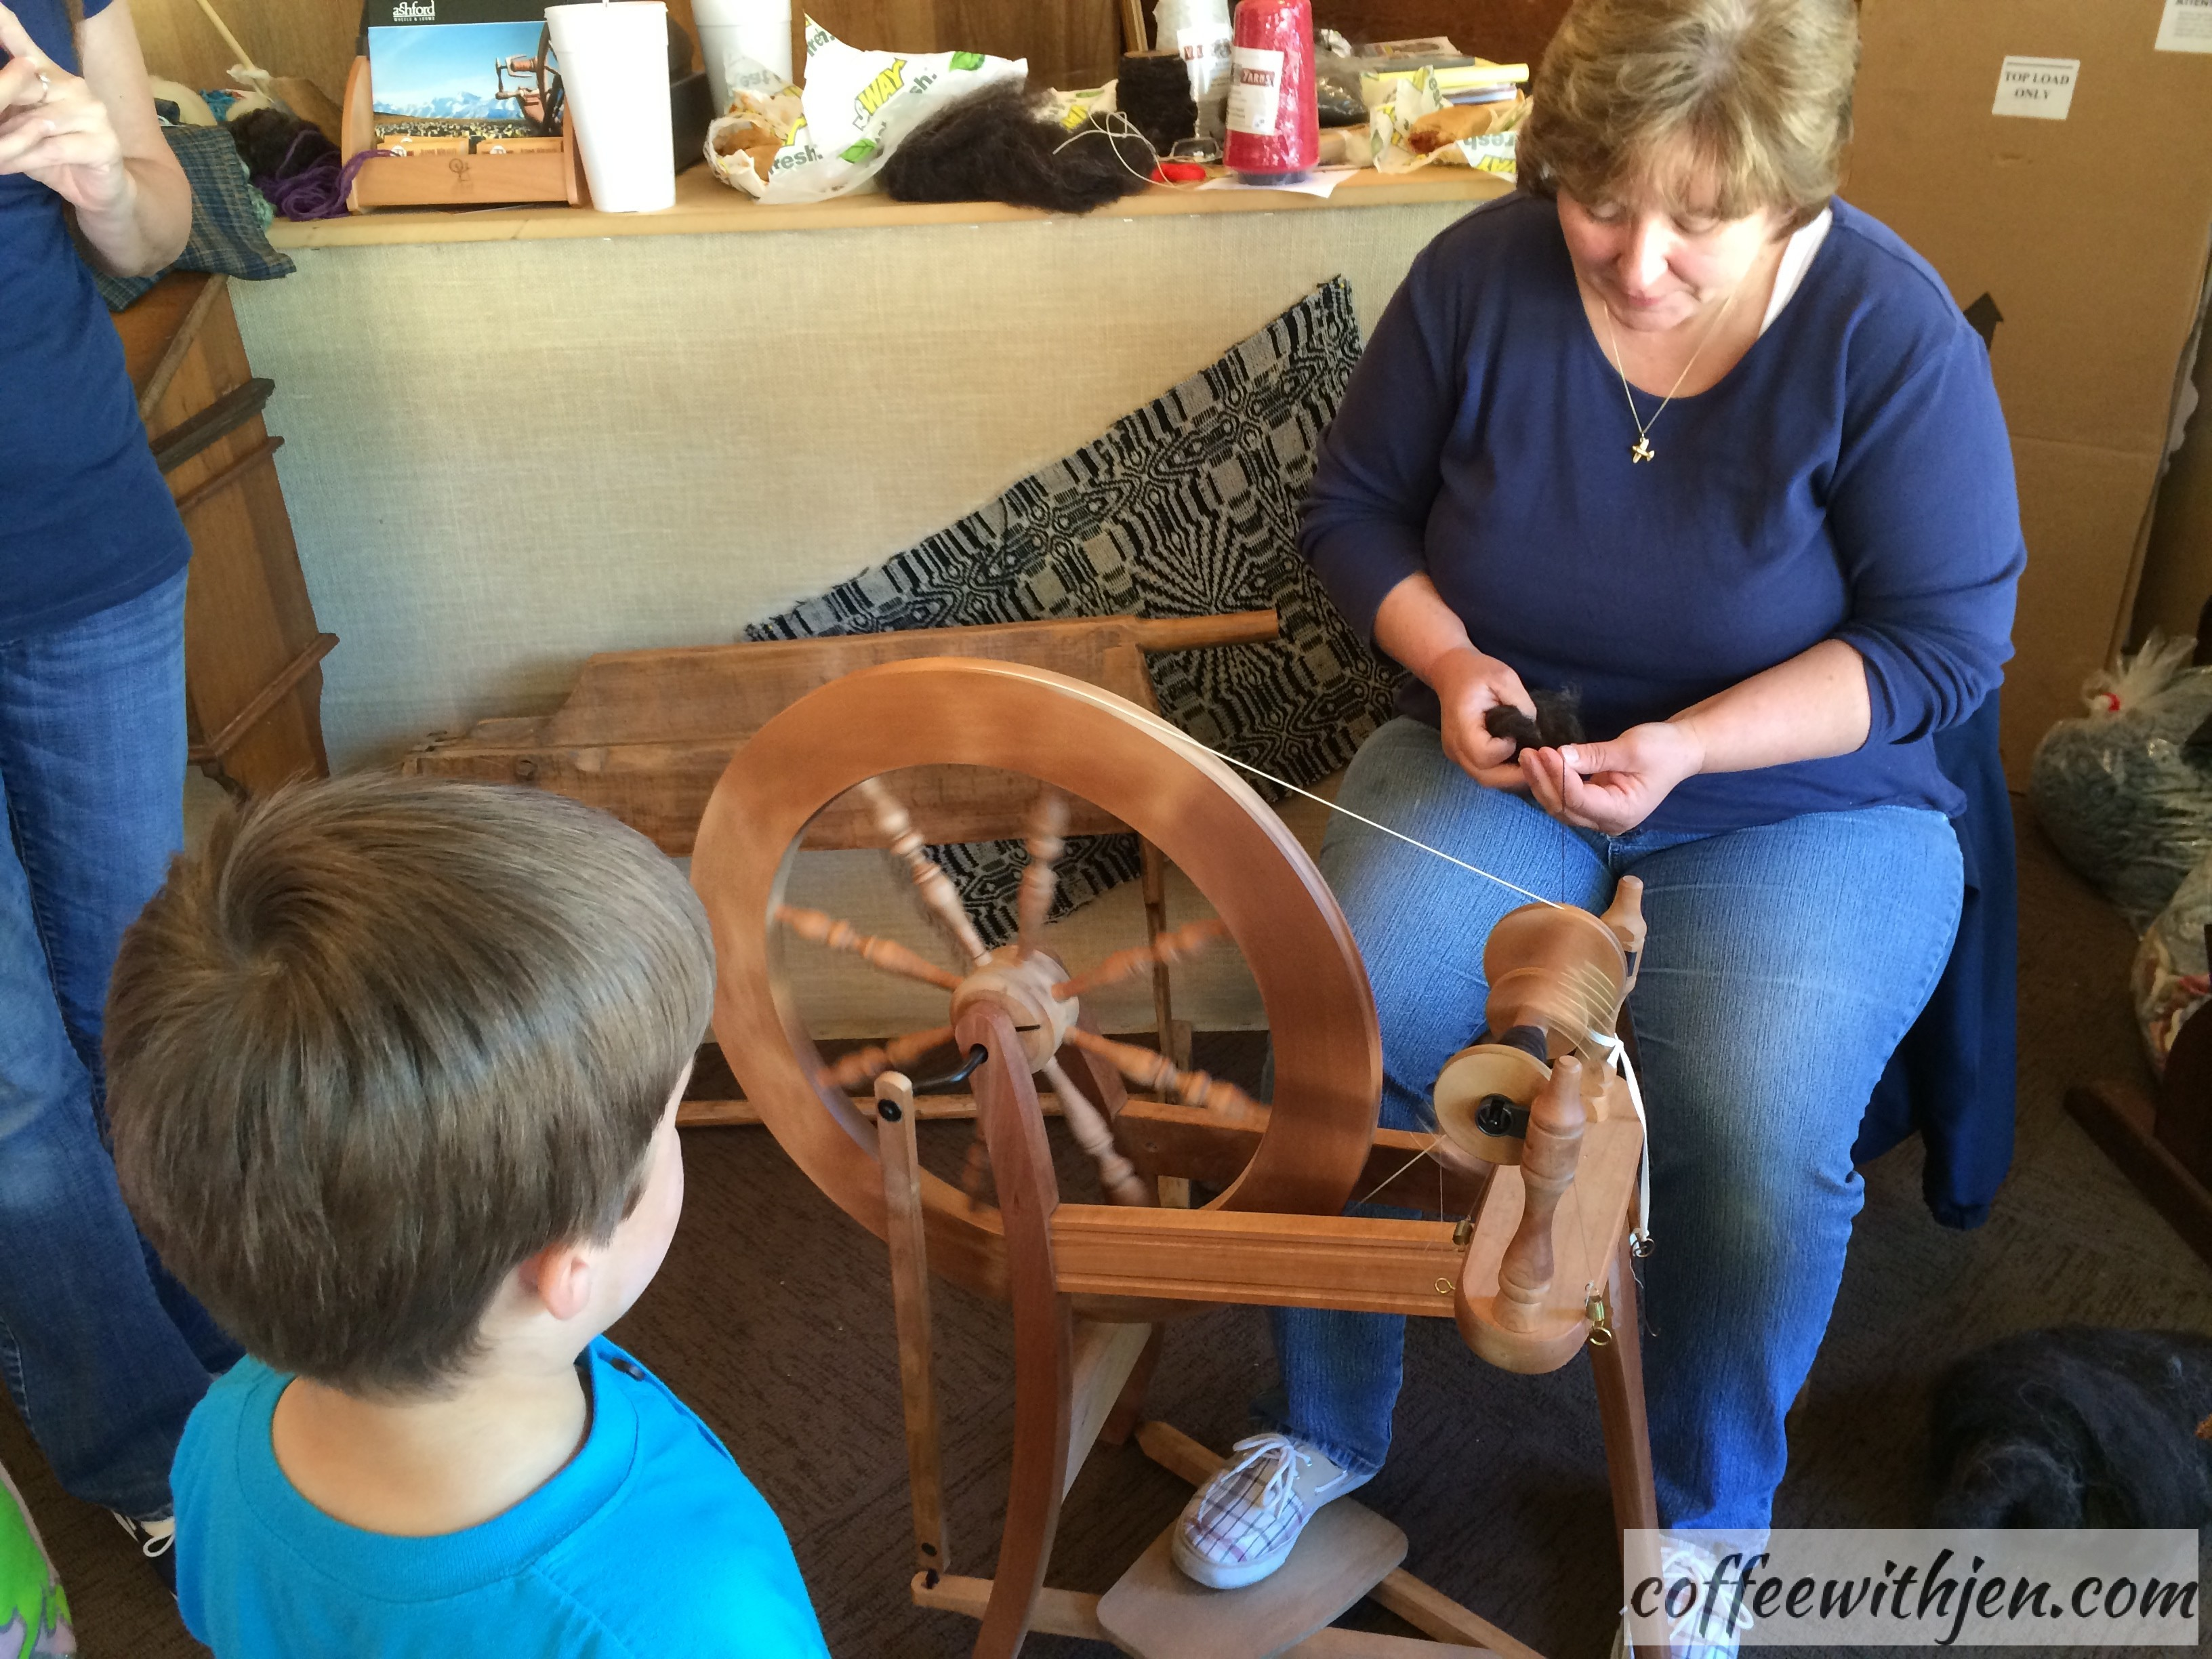 This was a live demonstration on how to spin wool into yarn.  See below for information on taking spinning and weaving classes.